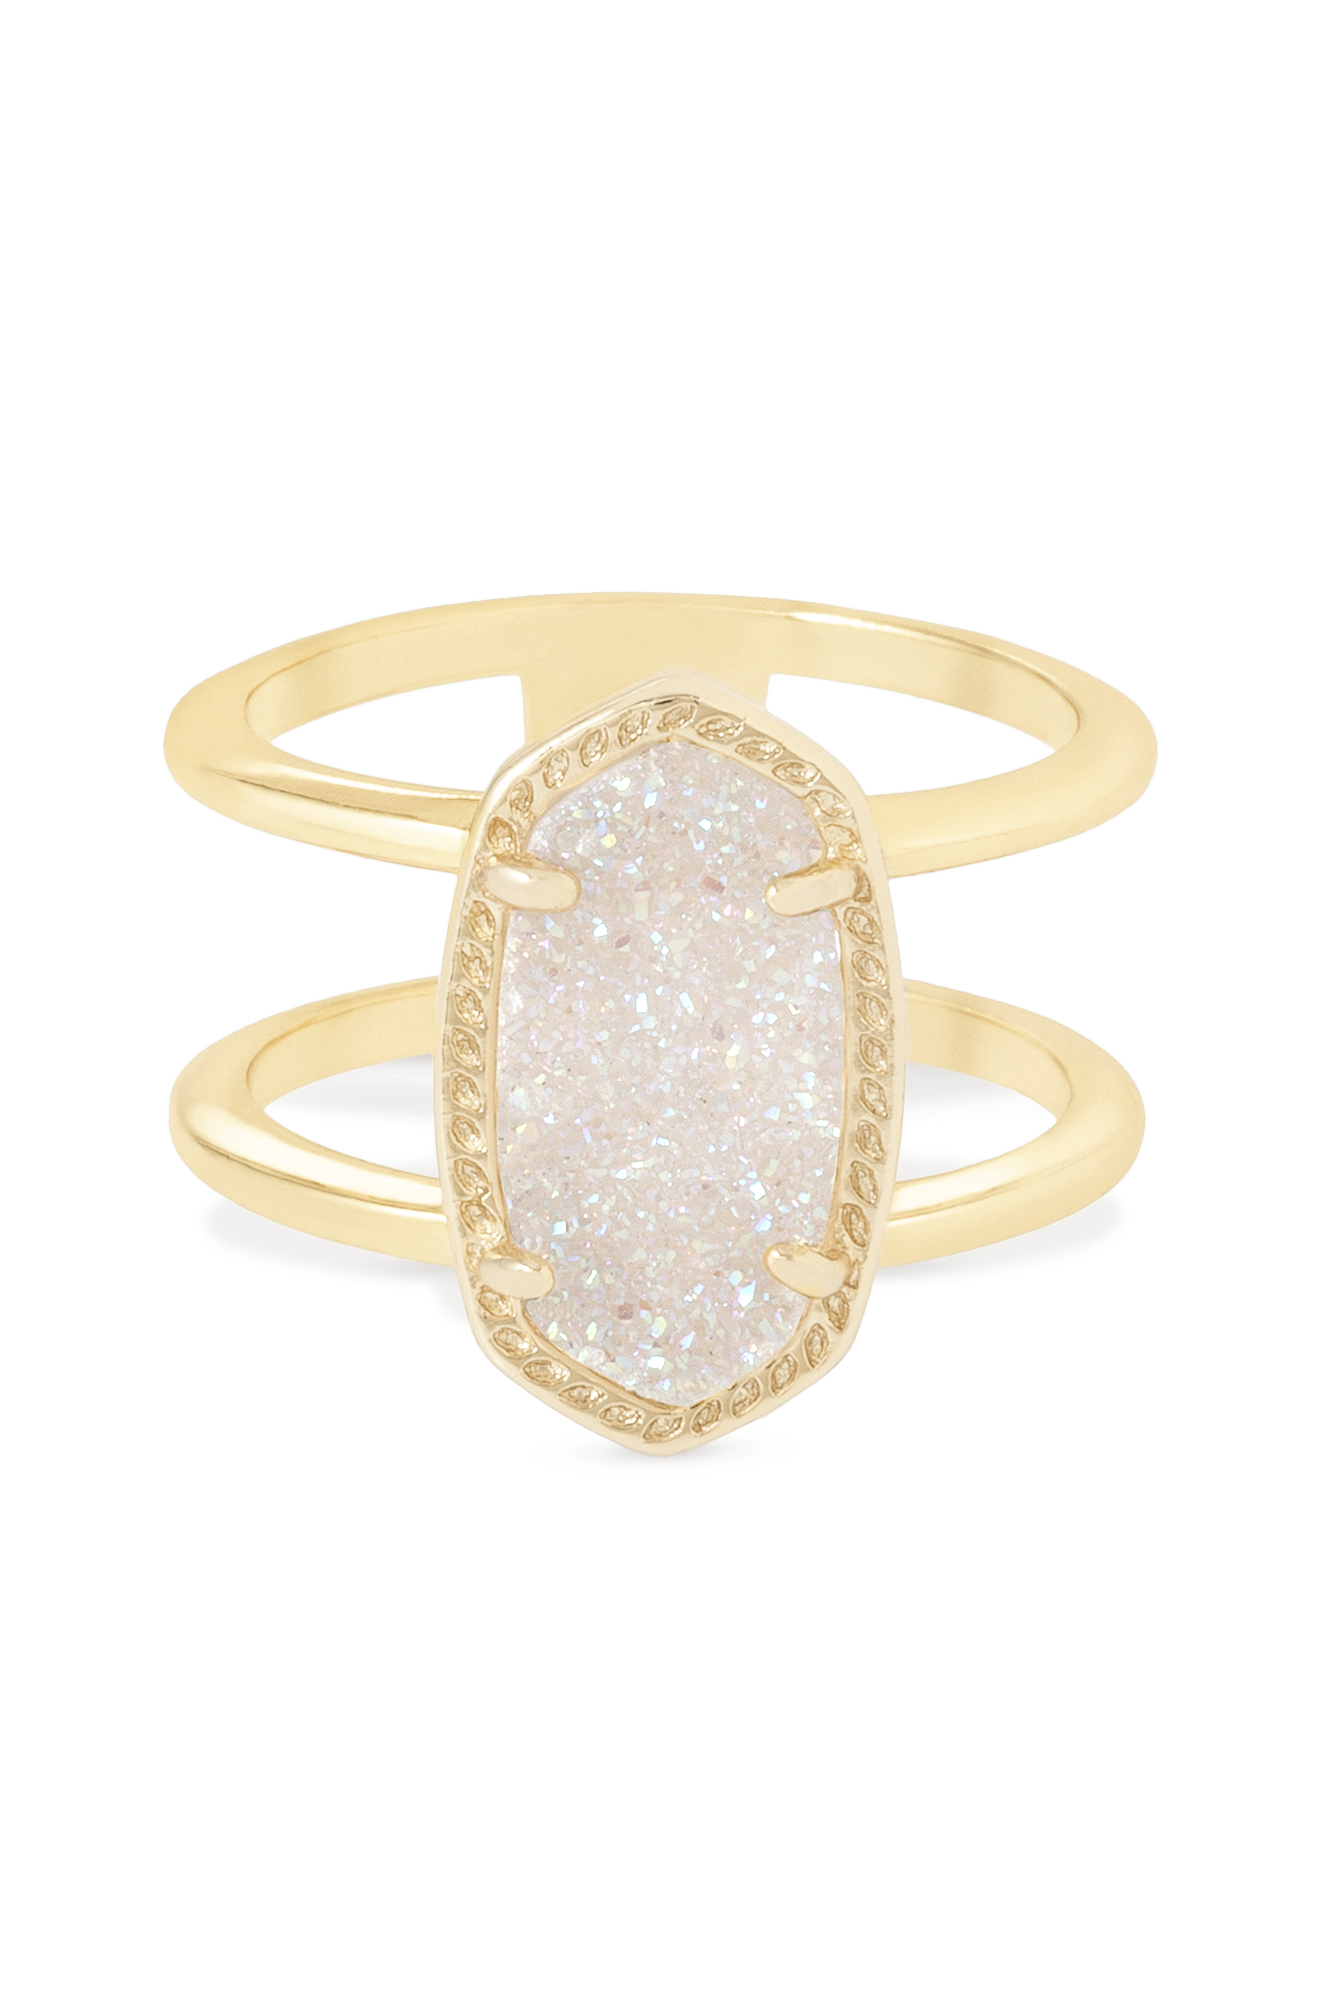 Kendra Scott Elyse Ring in Gold Iridescent Drusy